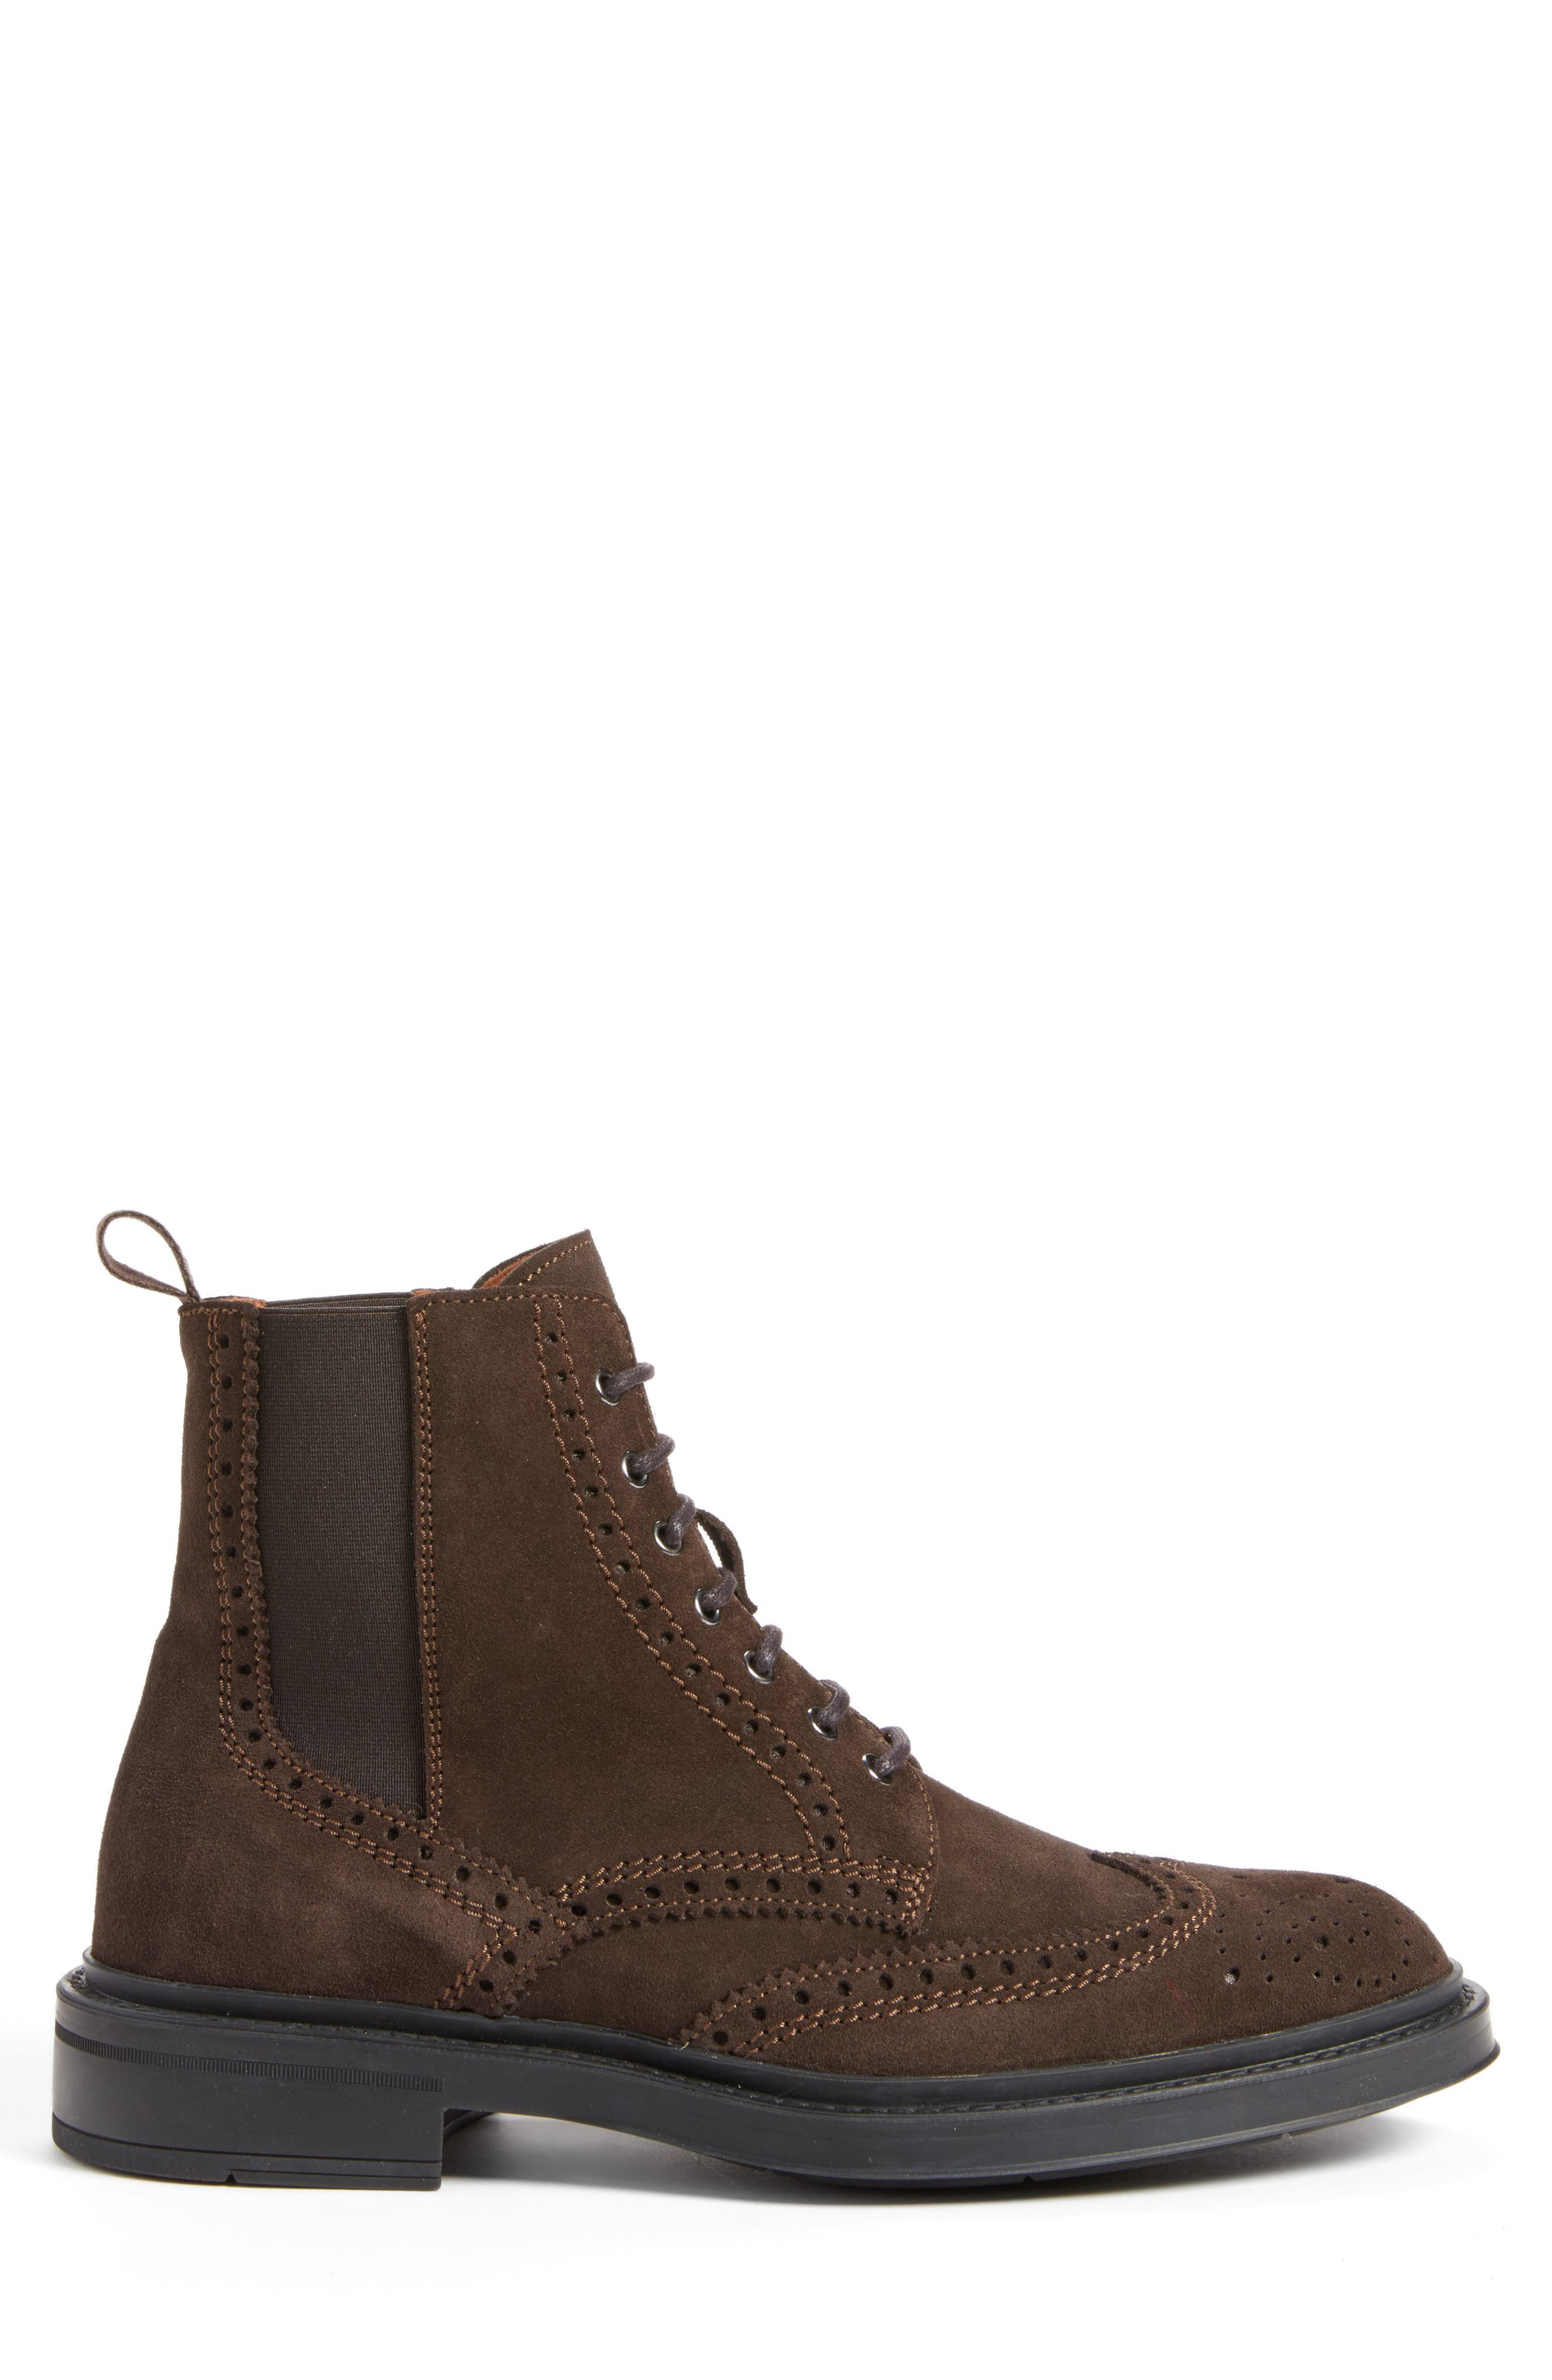 Lawrence Wingtip Boot,                             Alternate thumbnail 3, color,                             201